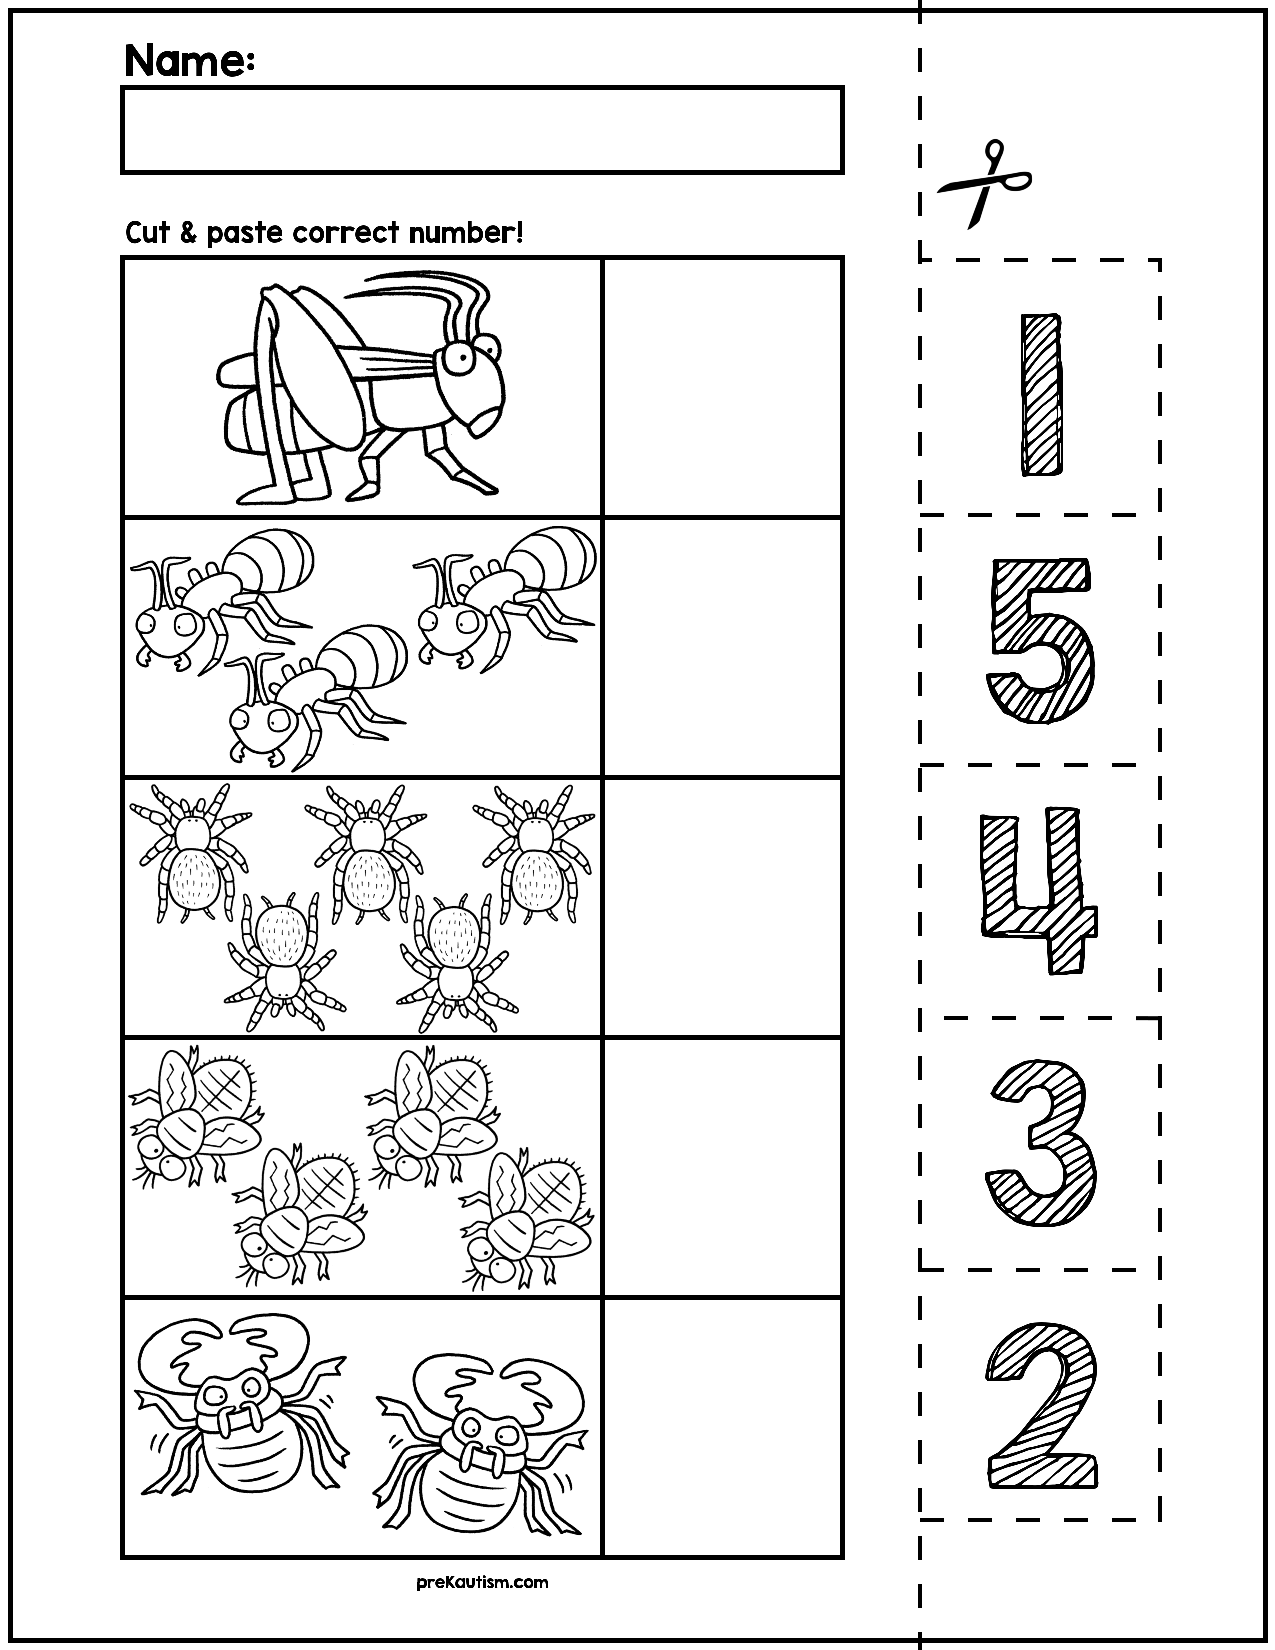 Spring Creepy Crawlers Cut & Match Worksheets | Numbers 1-5 | Number ...